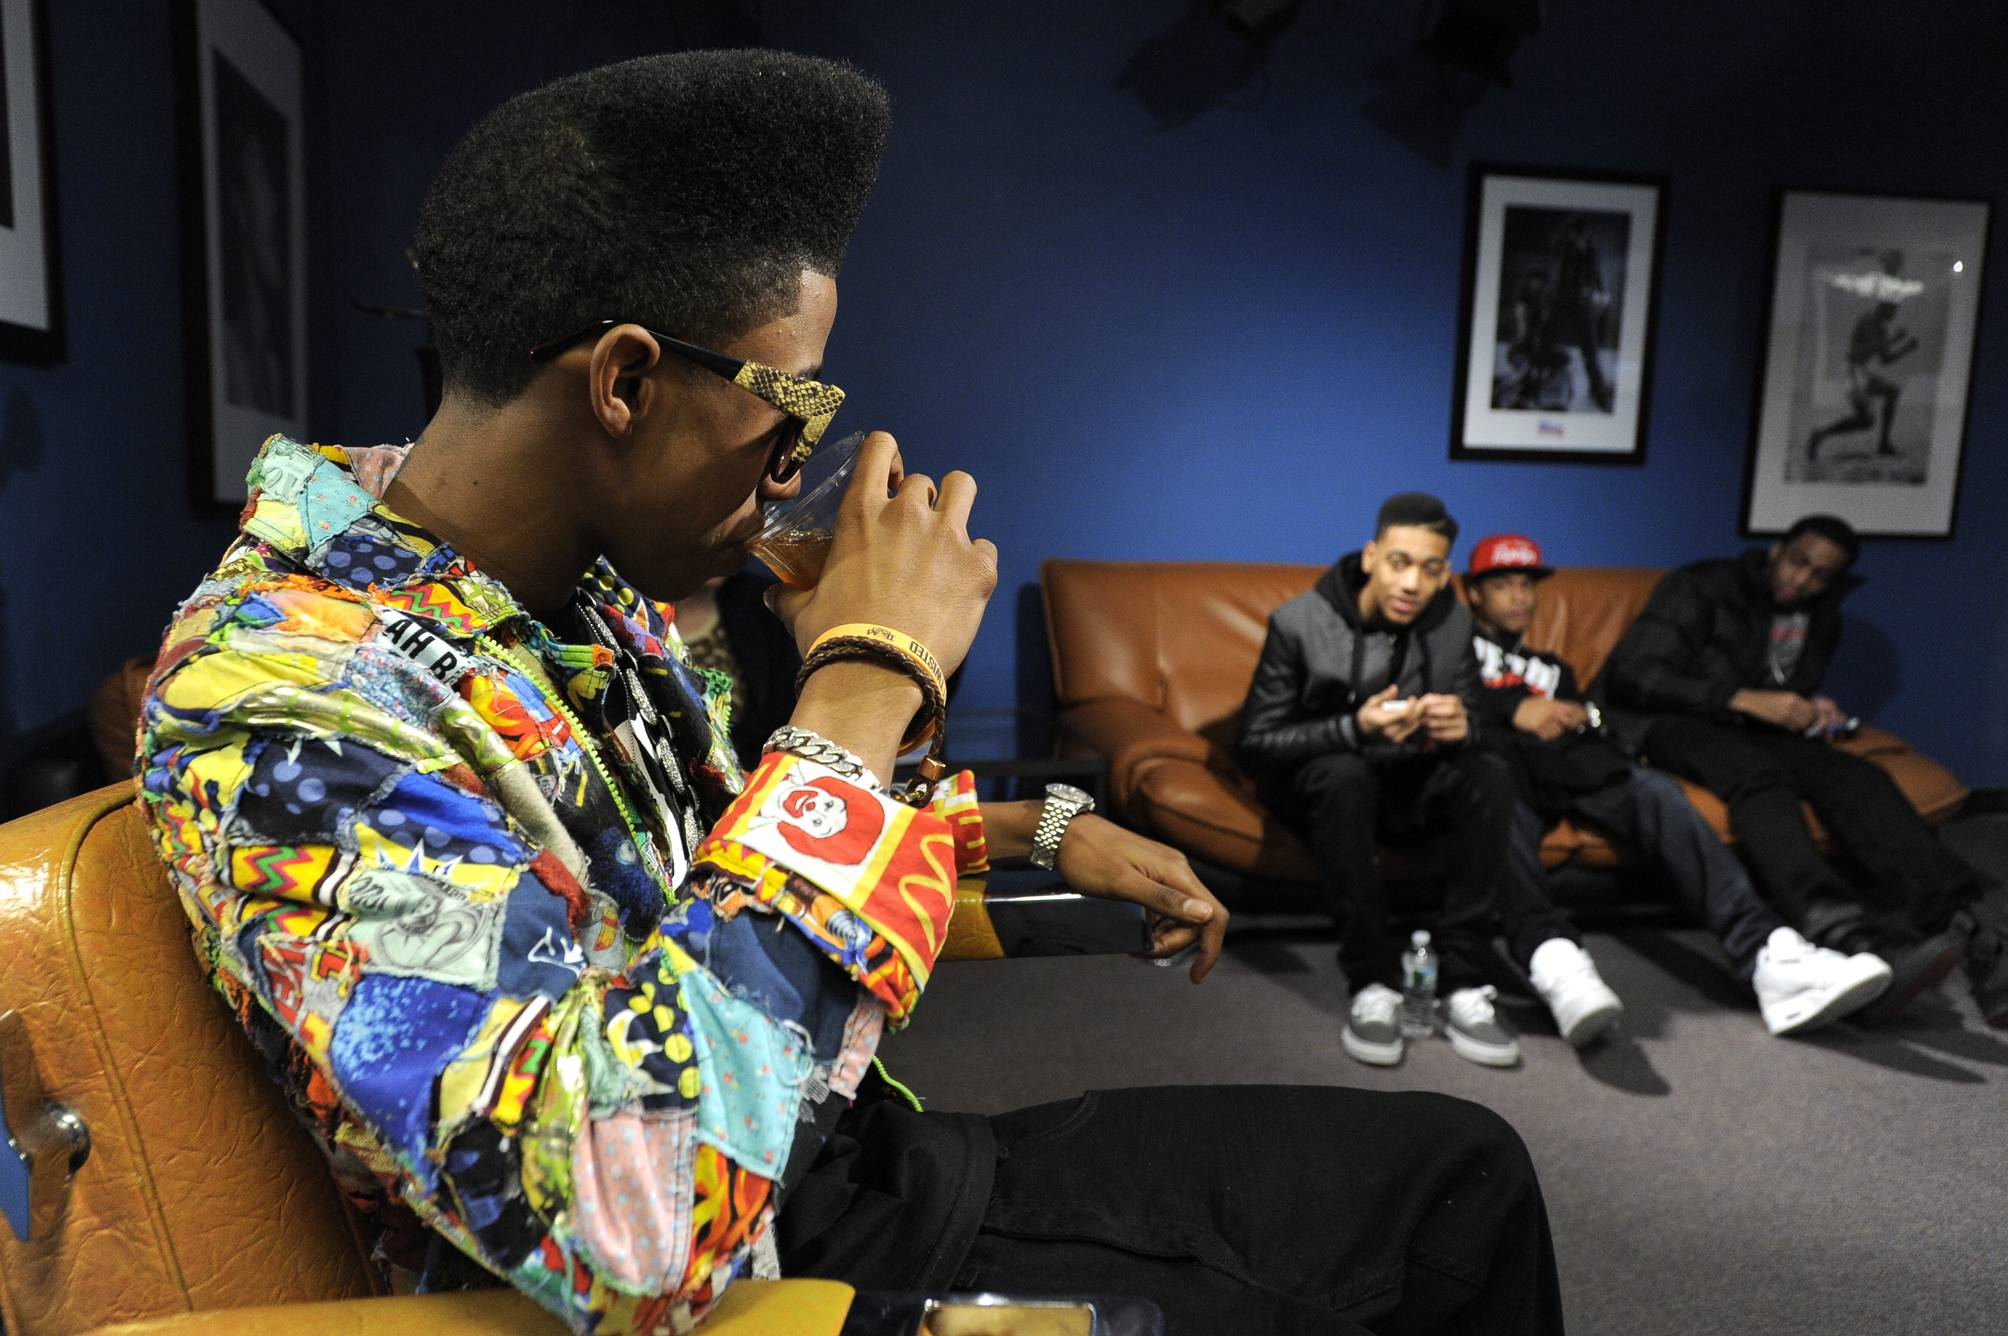 It's Good - Lil Twist in the green room at 106 & Park, January 05, 2012.(Photo: John Ricard/BET)